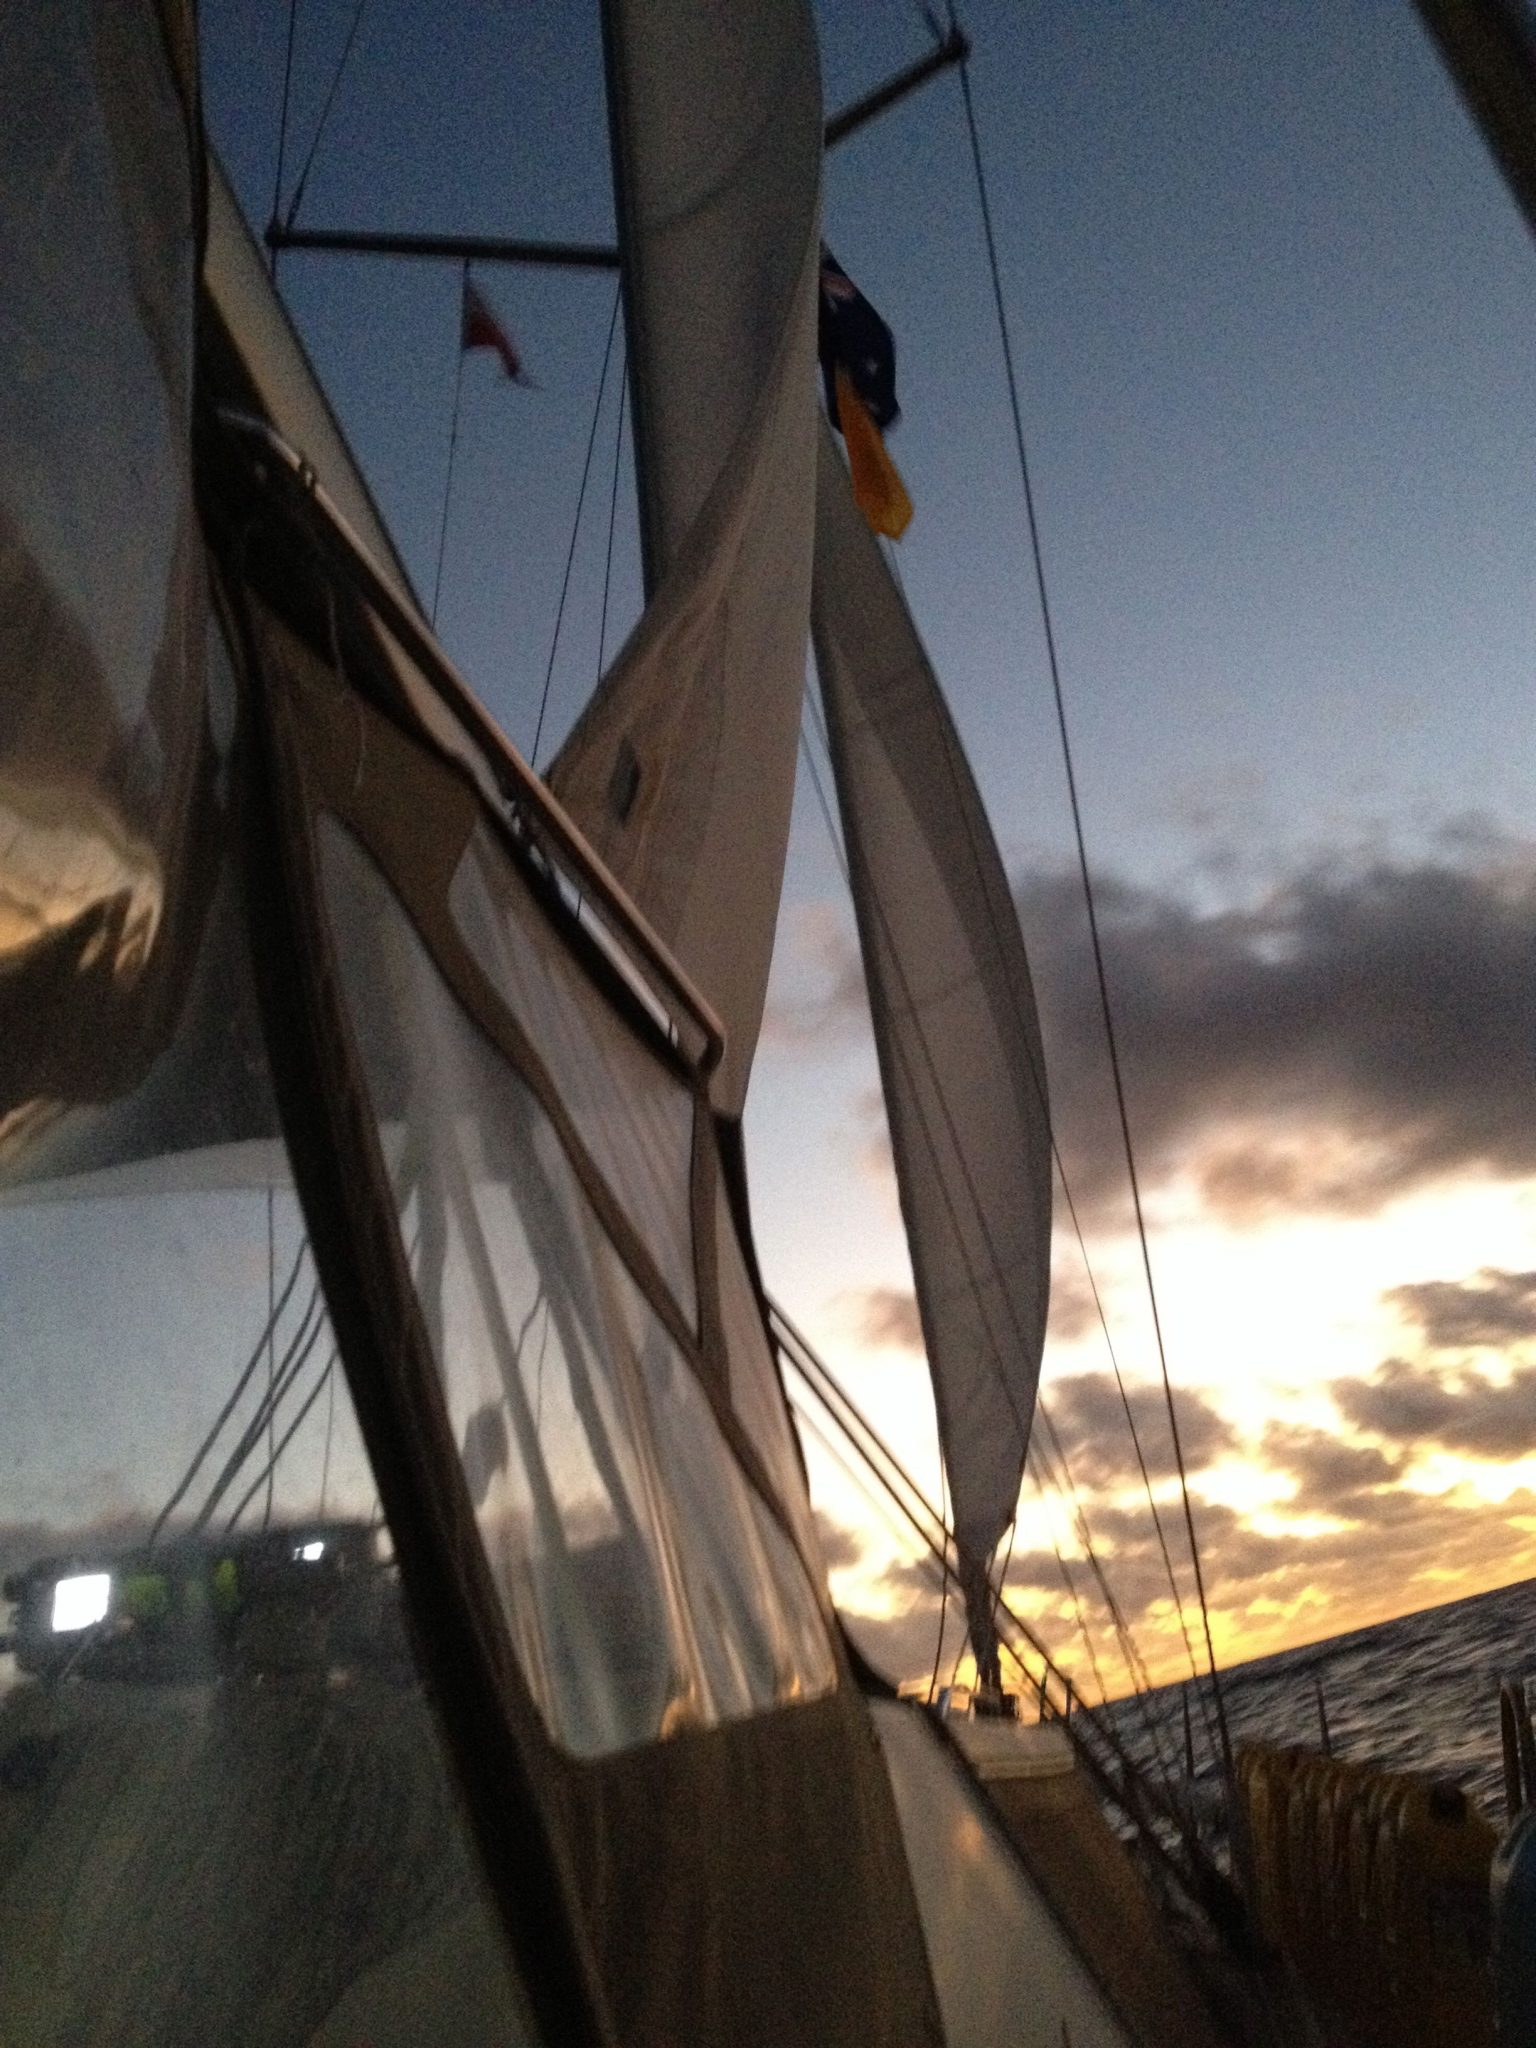 4-another-extraordinary-sunset-on-passage-from-vanuatu-to-mackay-australia